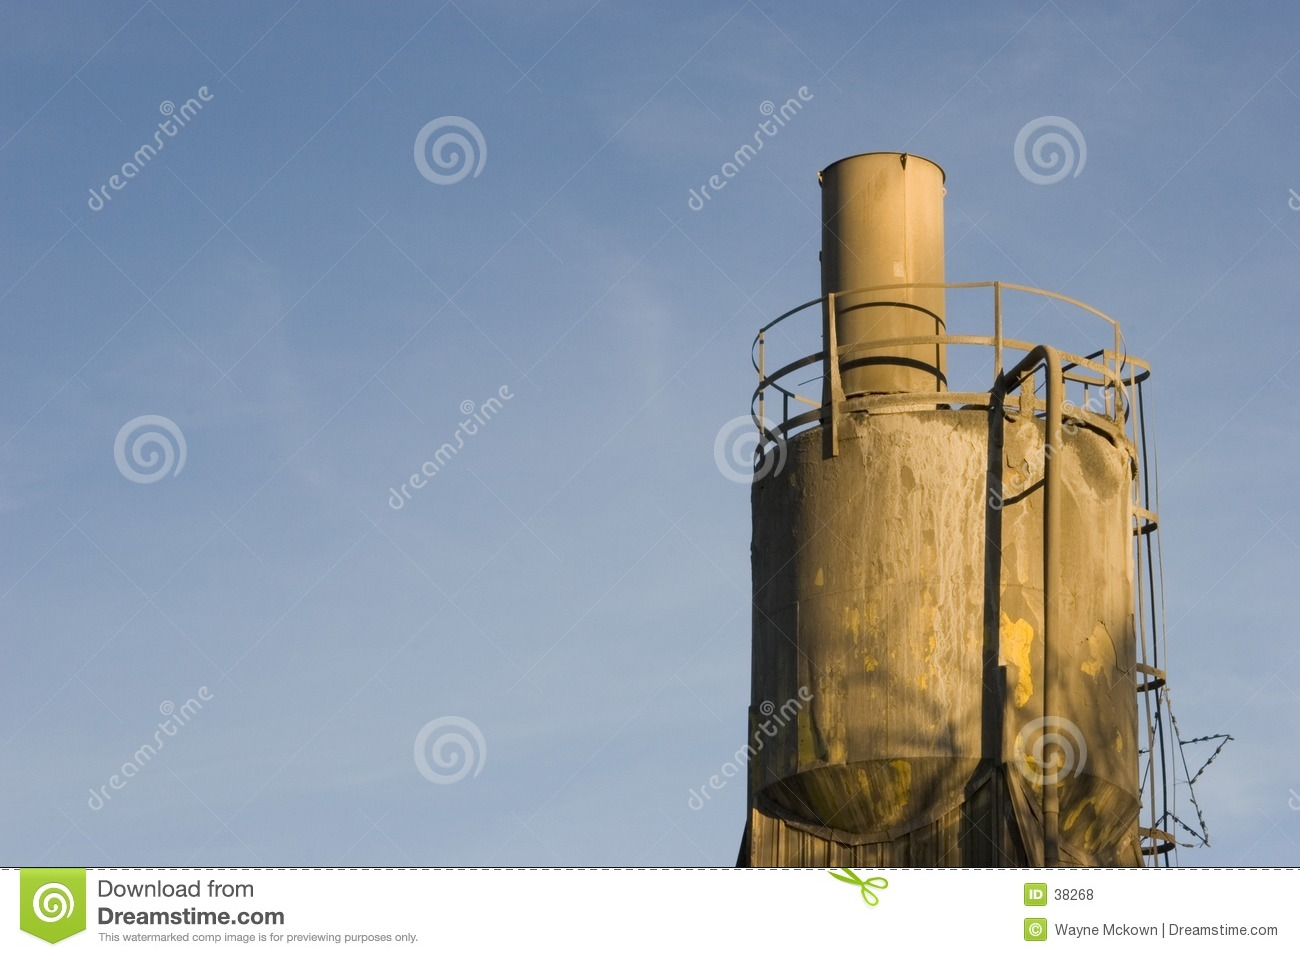 Cement Loading Plant : Cement plant loading hopper royalty free stock photos